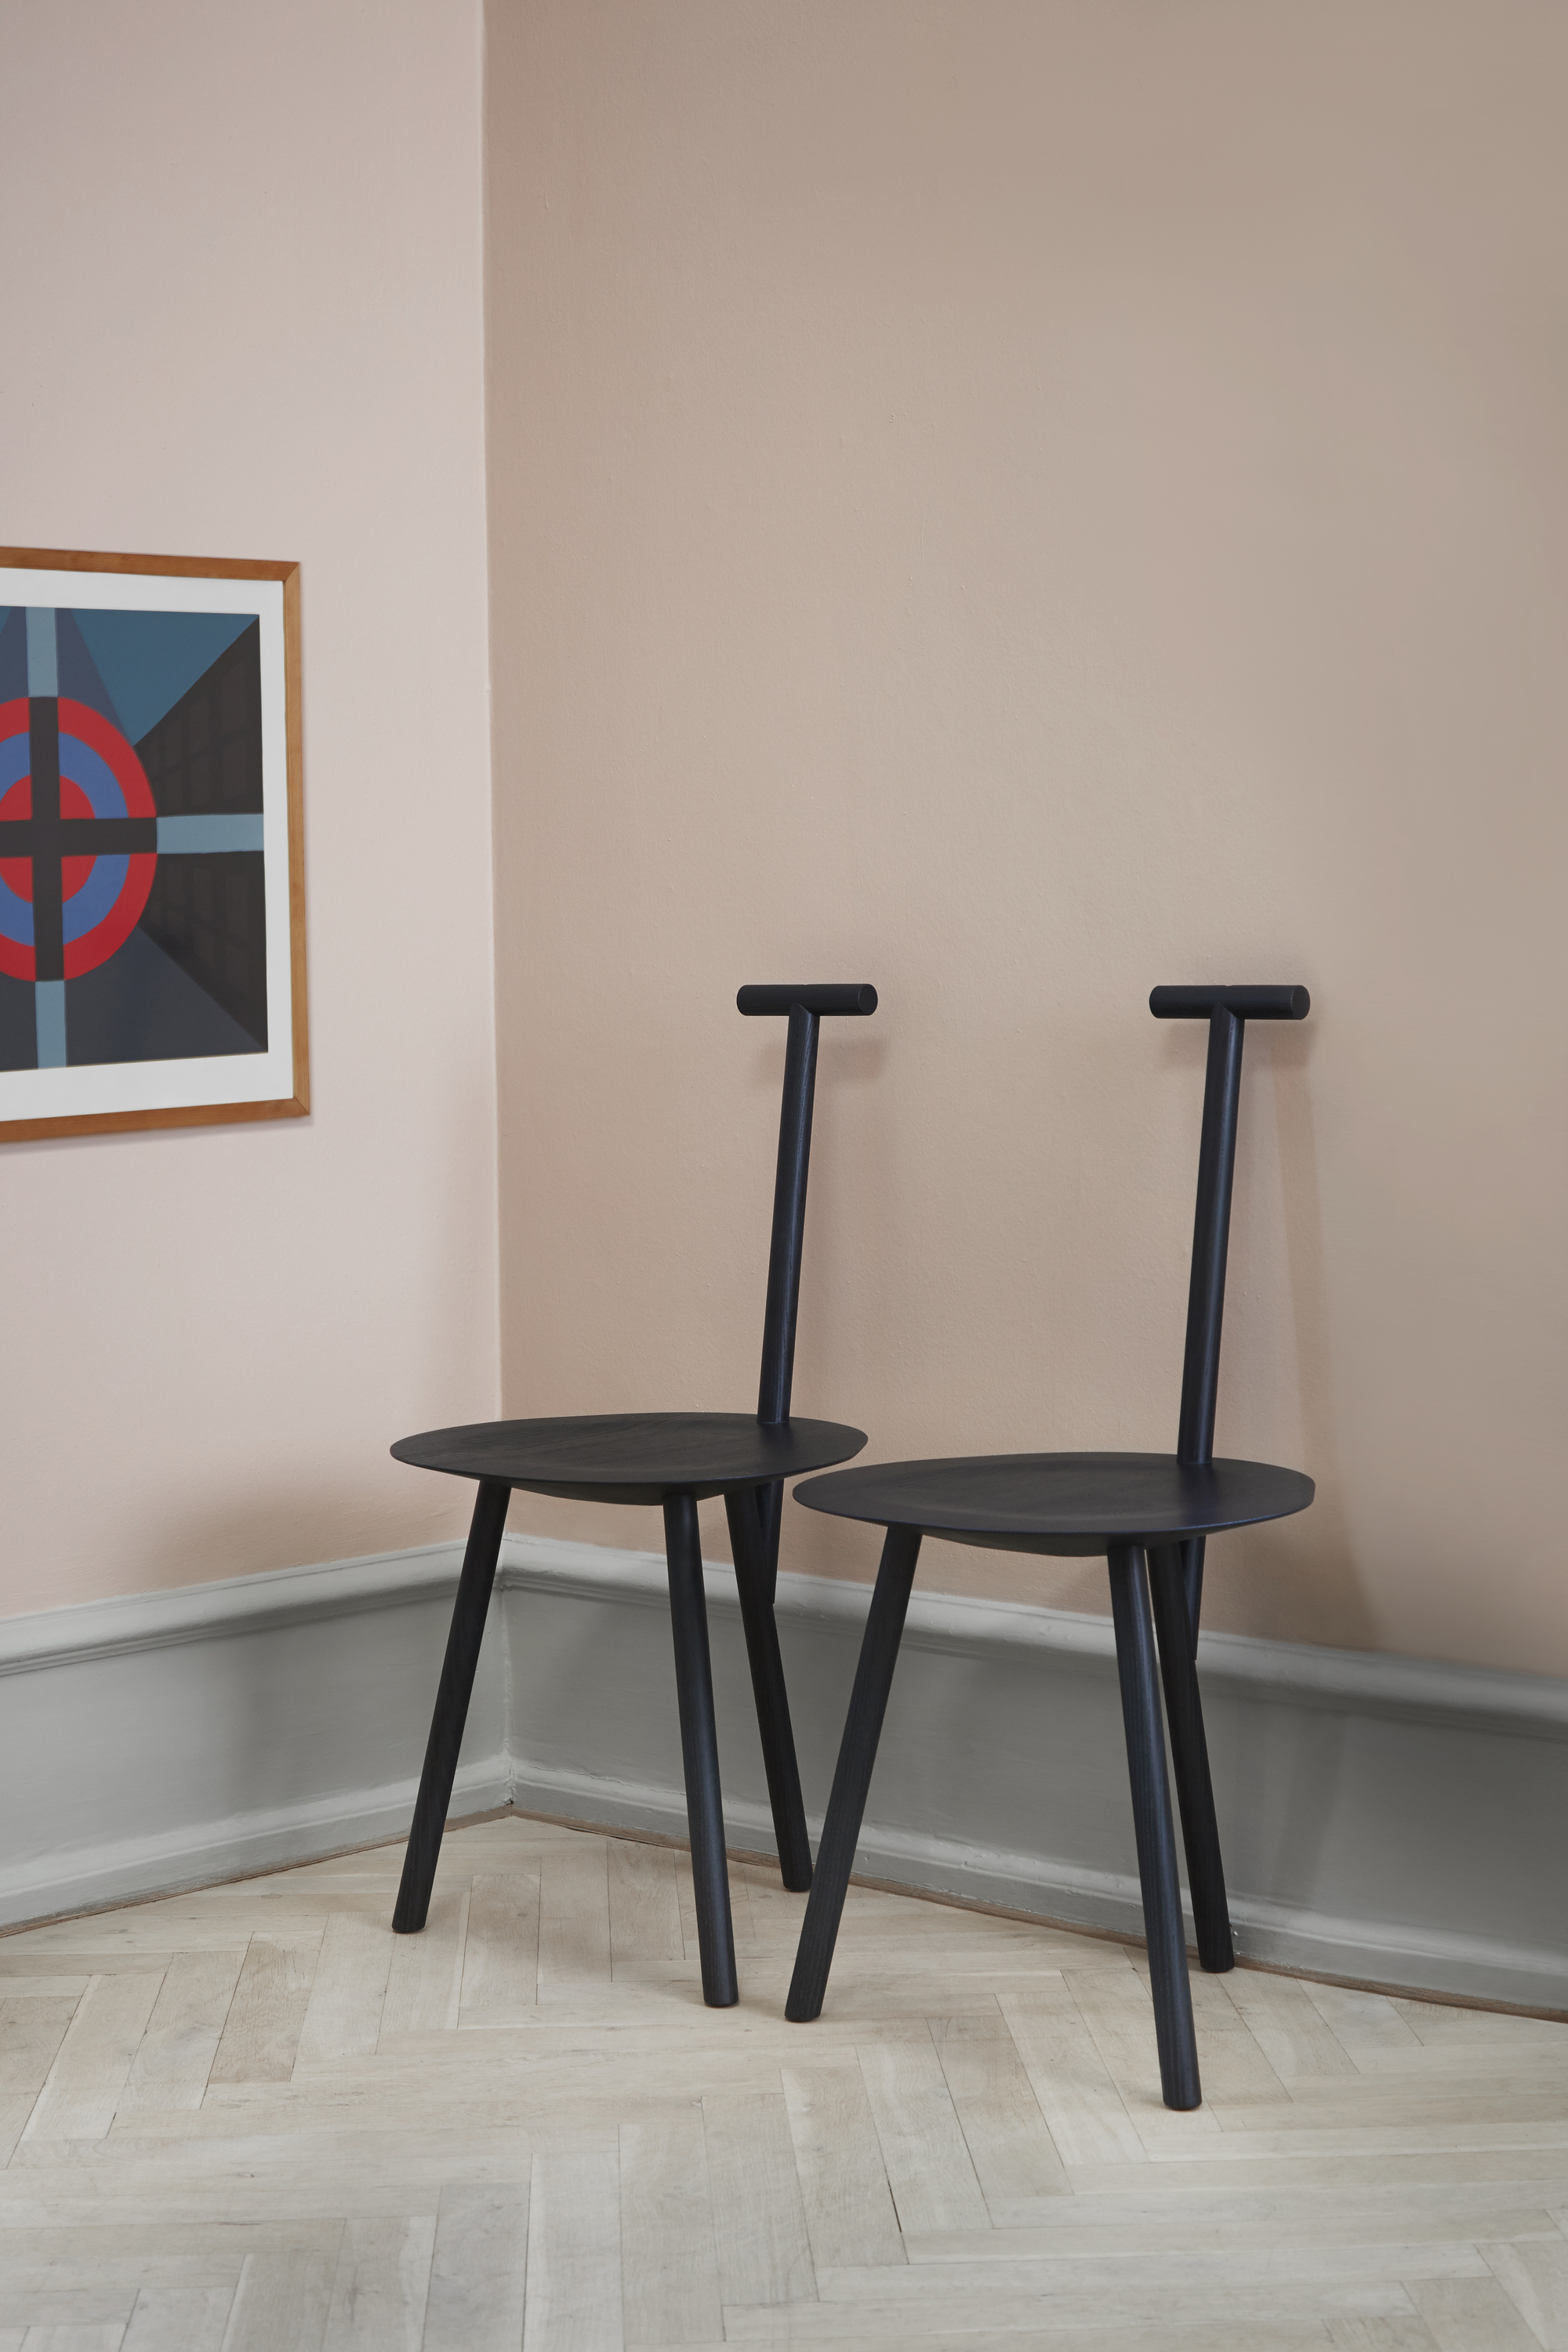 Spade Chairs by Faye Toogood for Please Wait to be Seated